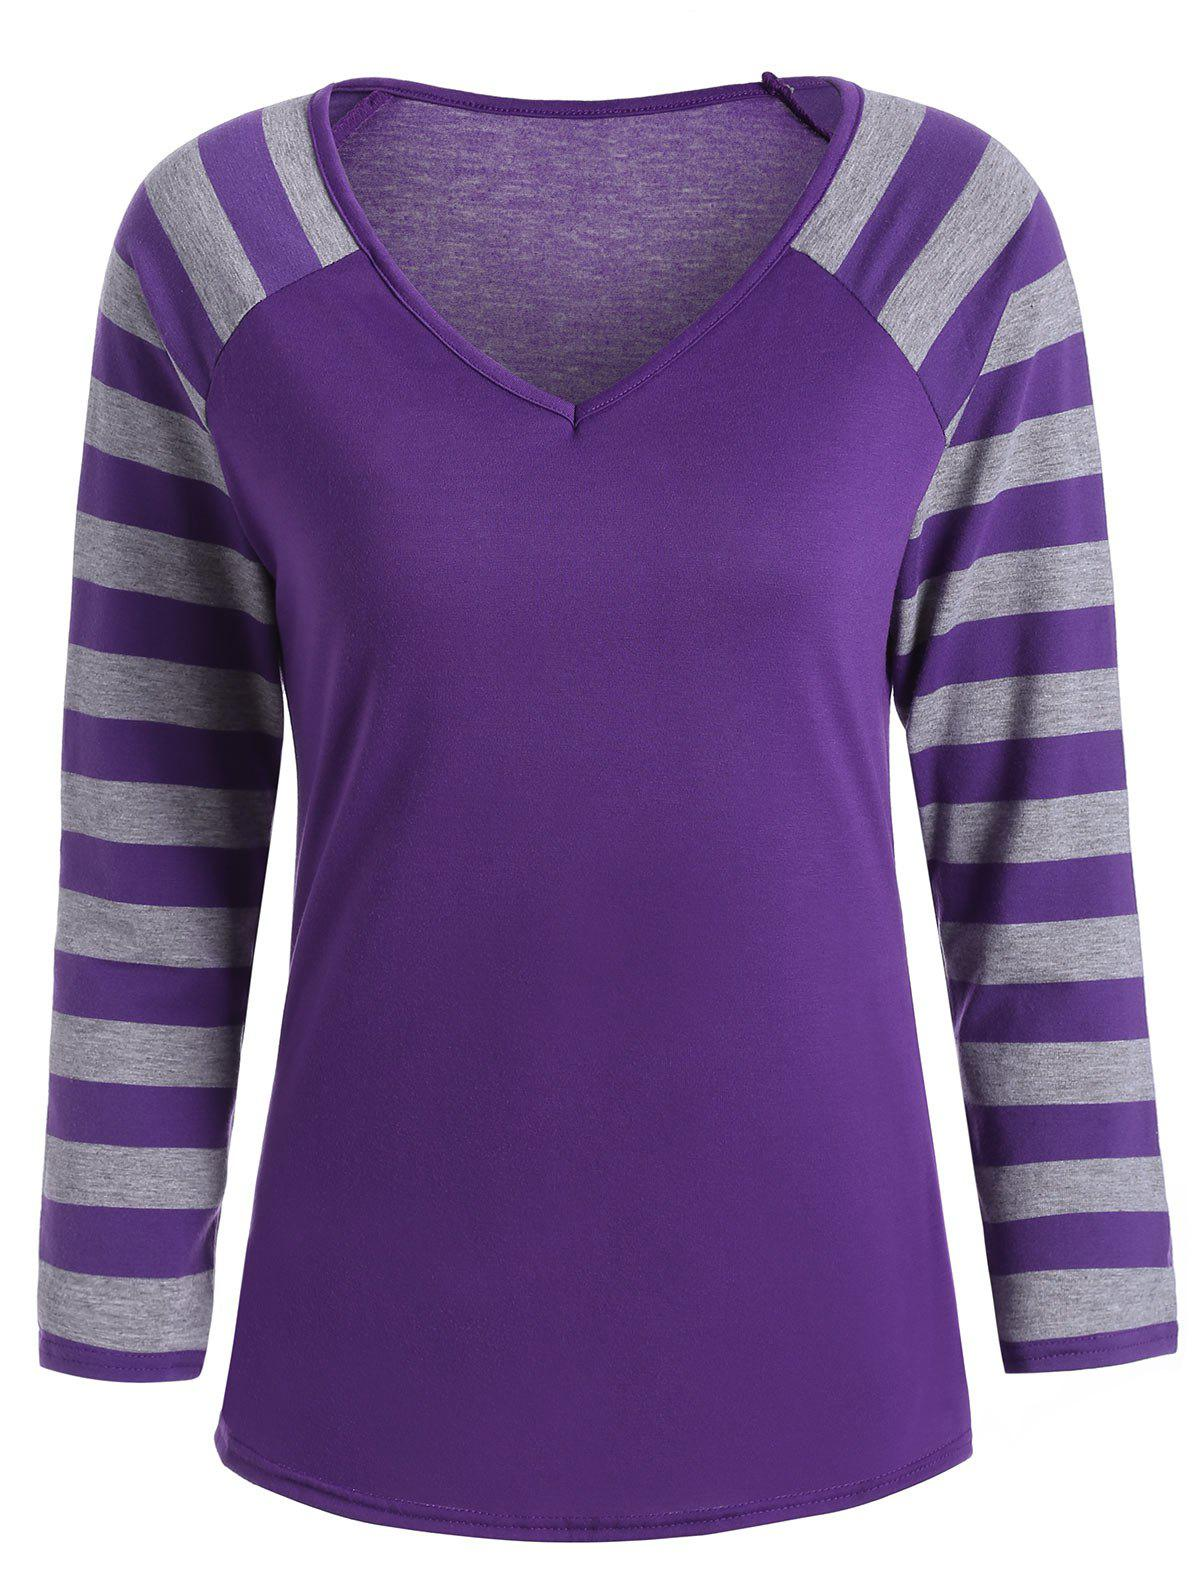 Purple s v neck raglan sleeve striped shirt for Purple and black striped t shirt